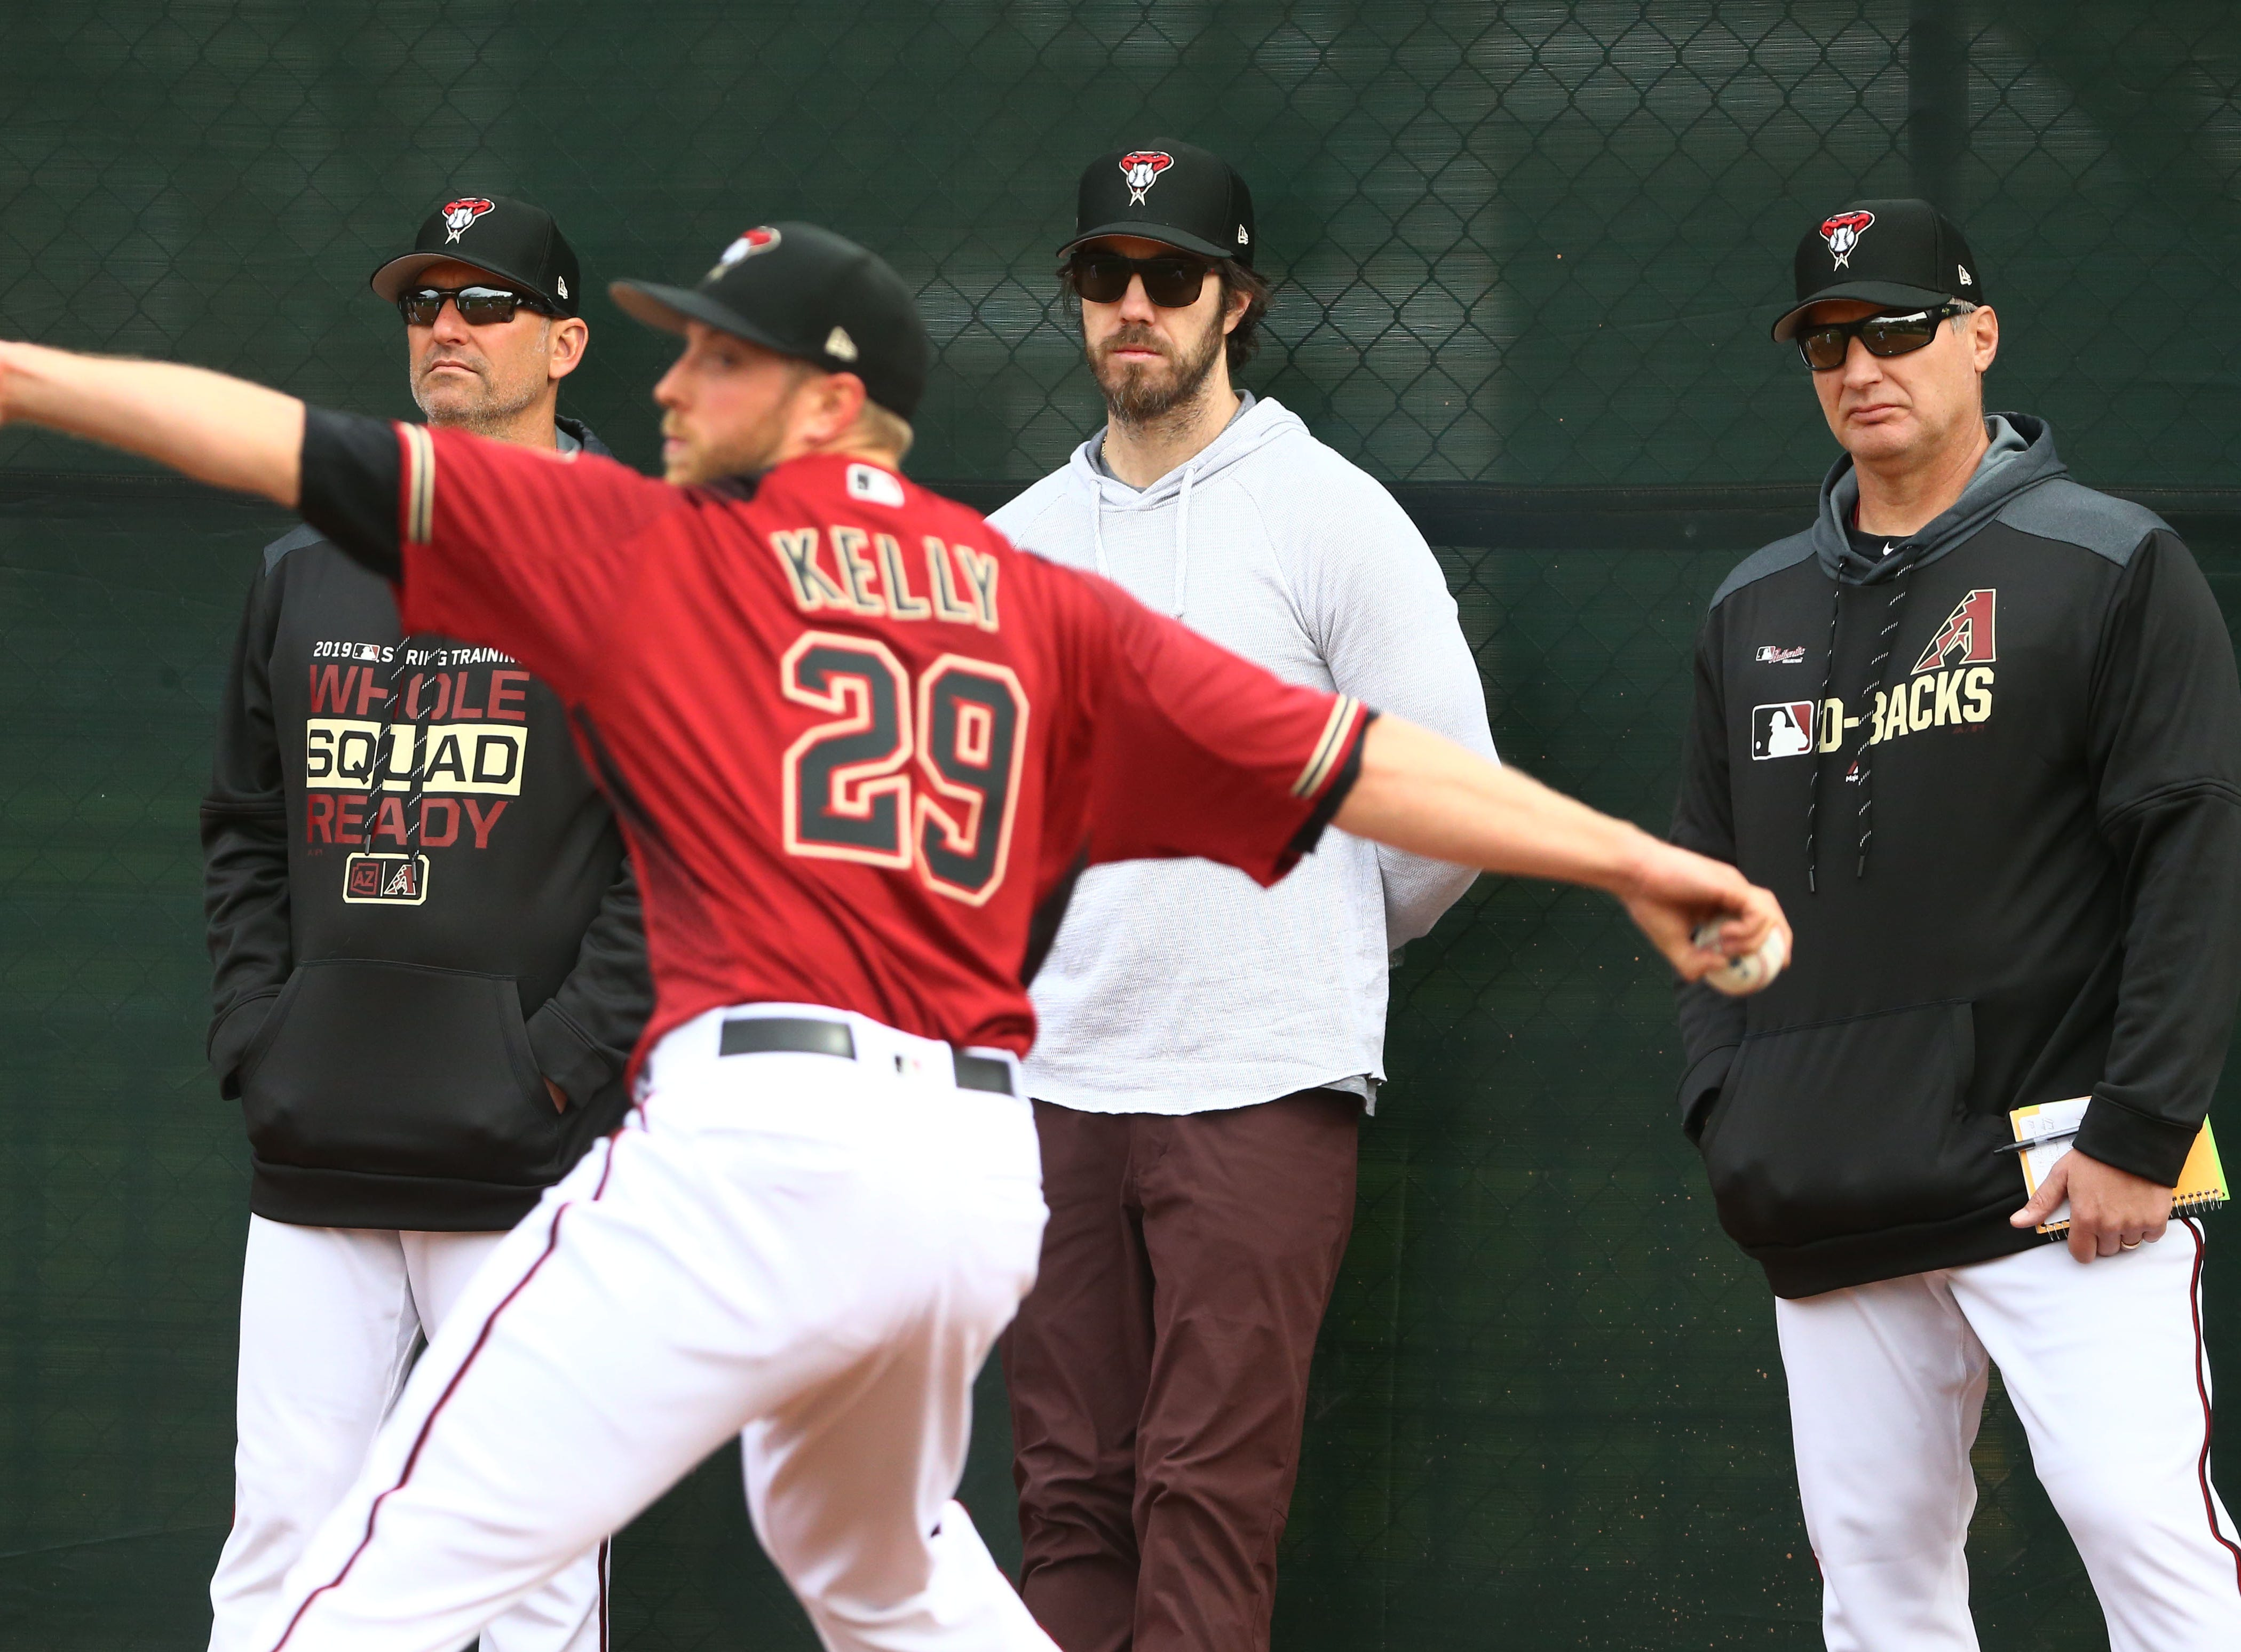 Manager Torey Lovullo and retired pitcher Dan Haren watch Arizona Diamondbacks Merrill Kelly (29) in the  bullpen during the first day of spring training workouts on Feb. 13 at Salt River Fields in Scottsdale.